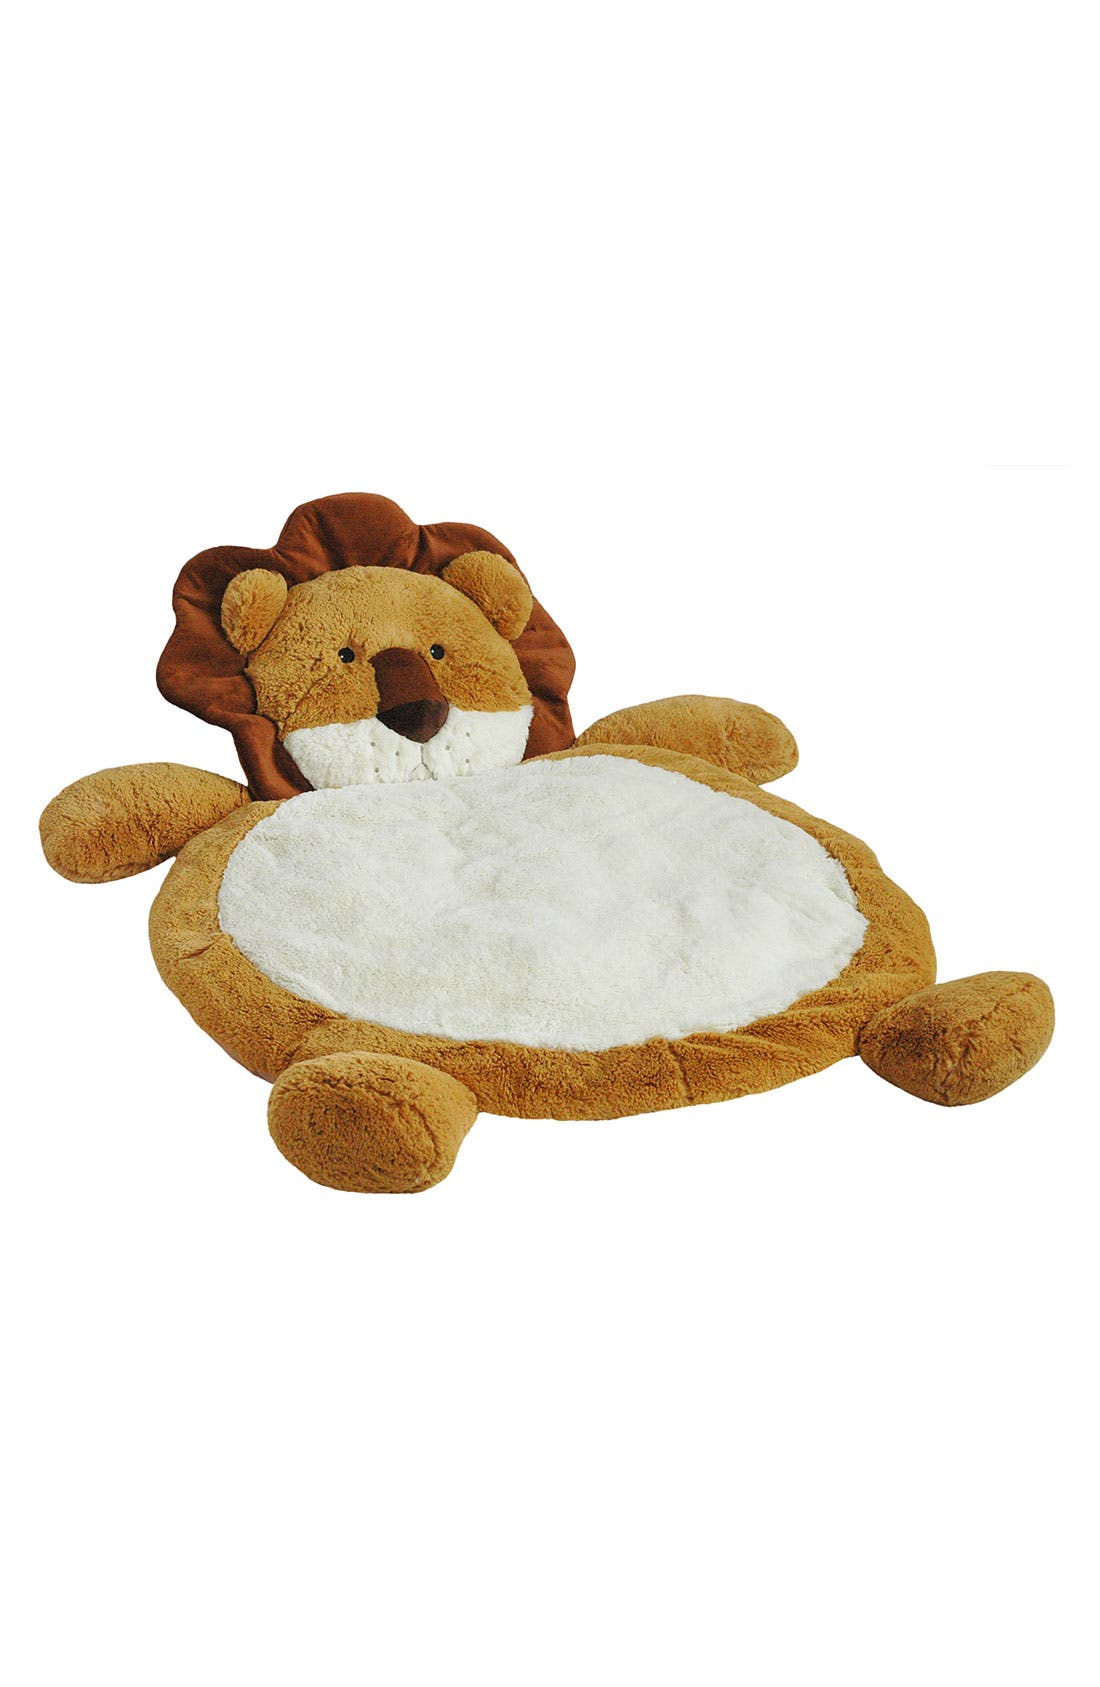 Main Image - Bestever 'In Baby' Plush Mat